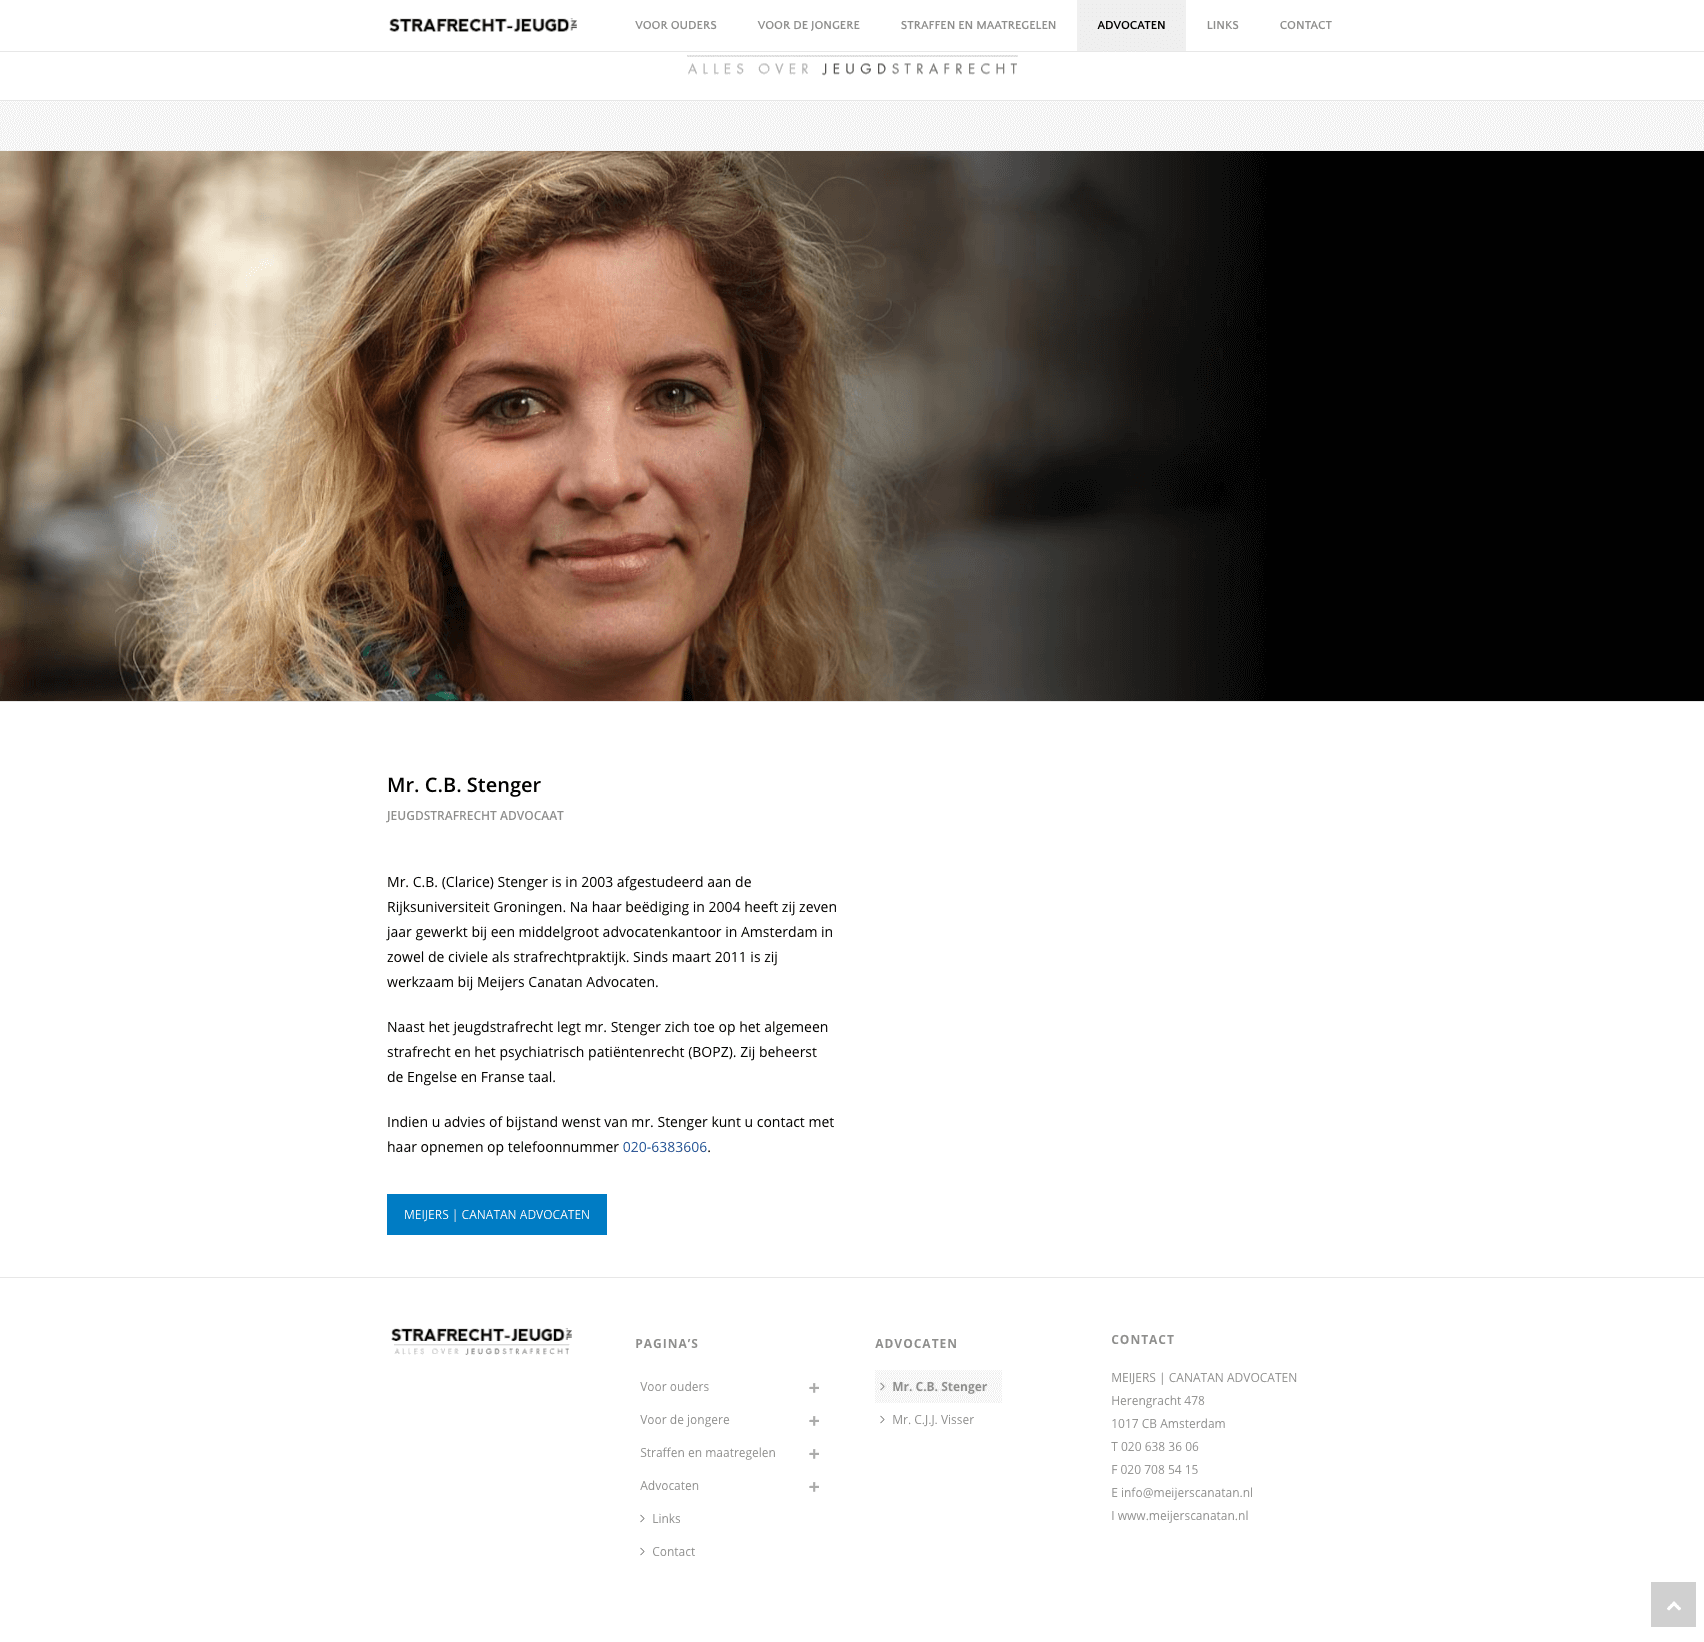 Strafrecht-jeugd Website Greencreatives